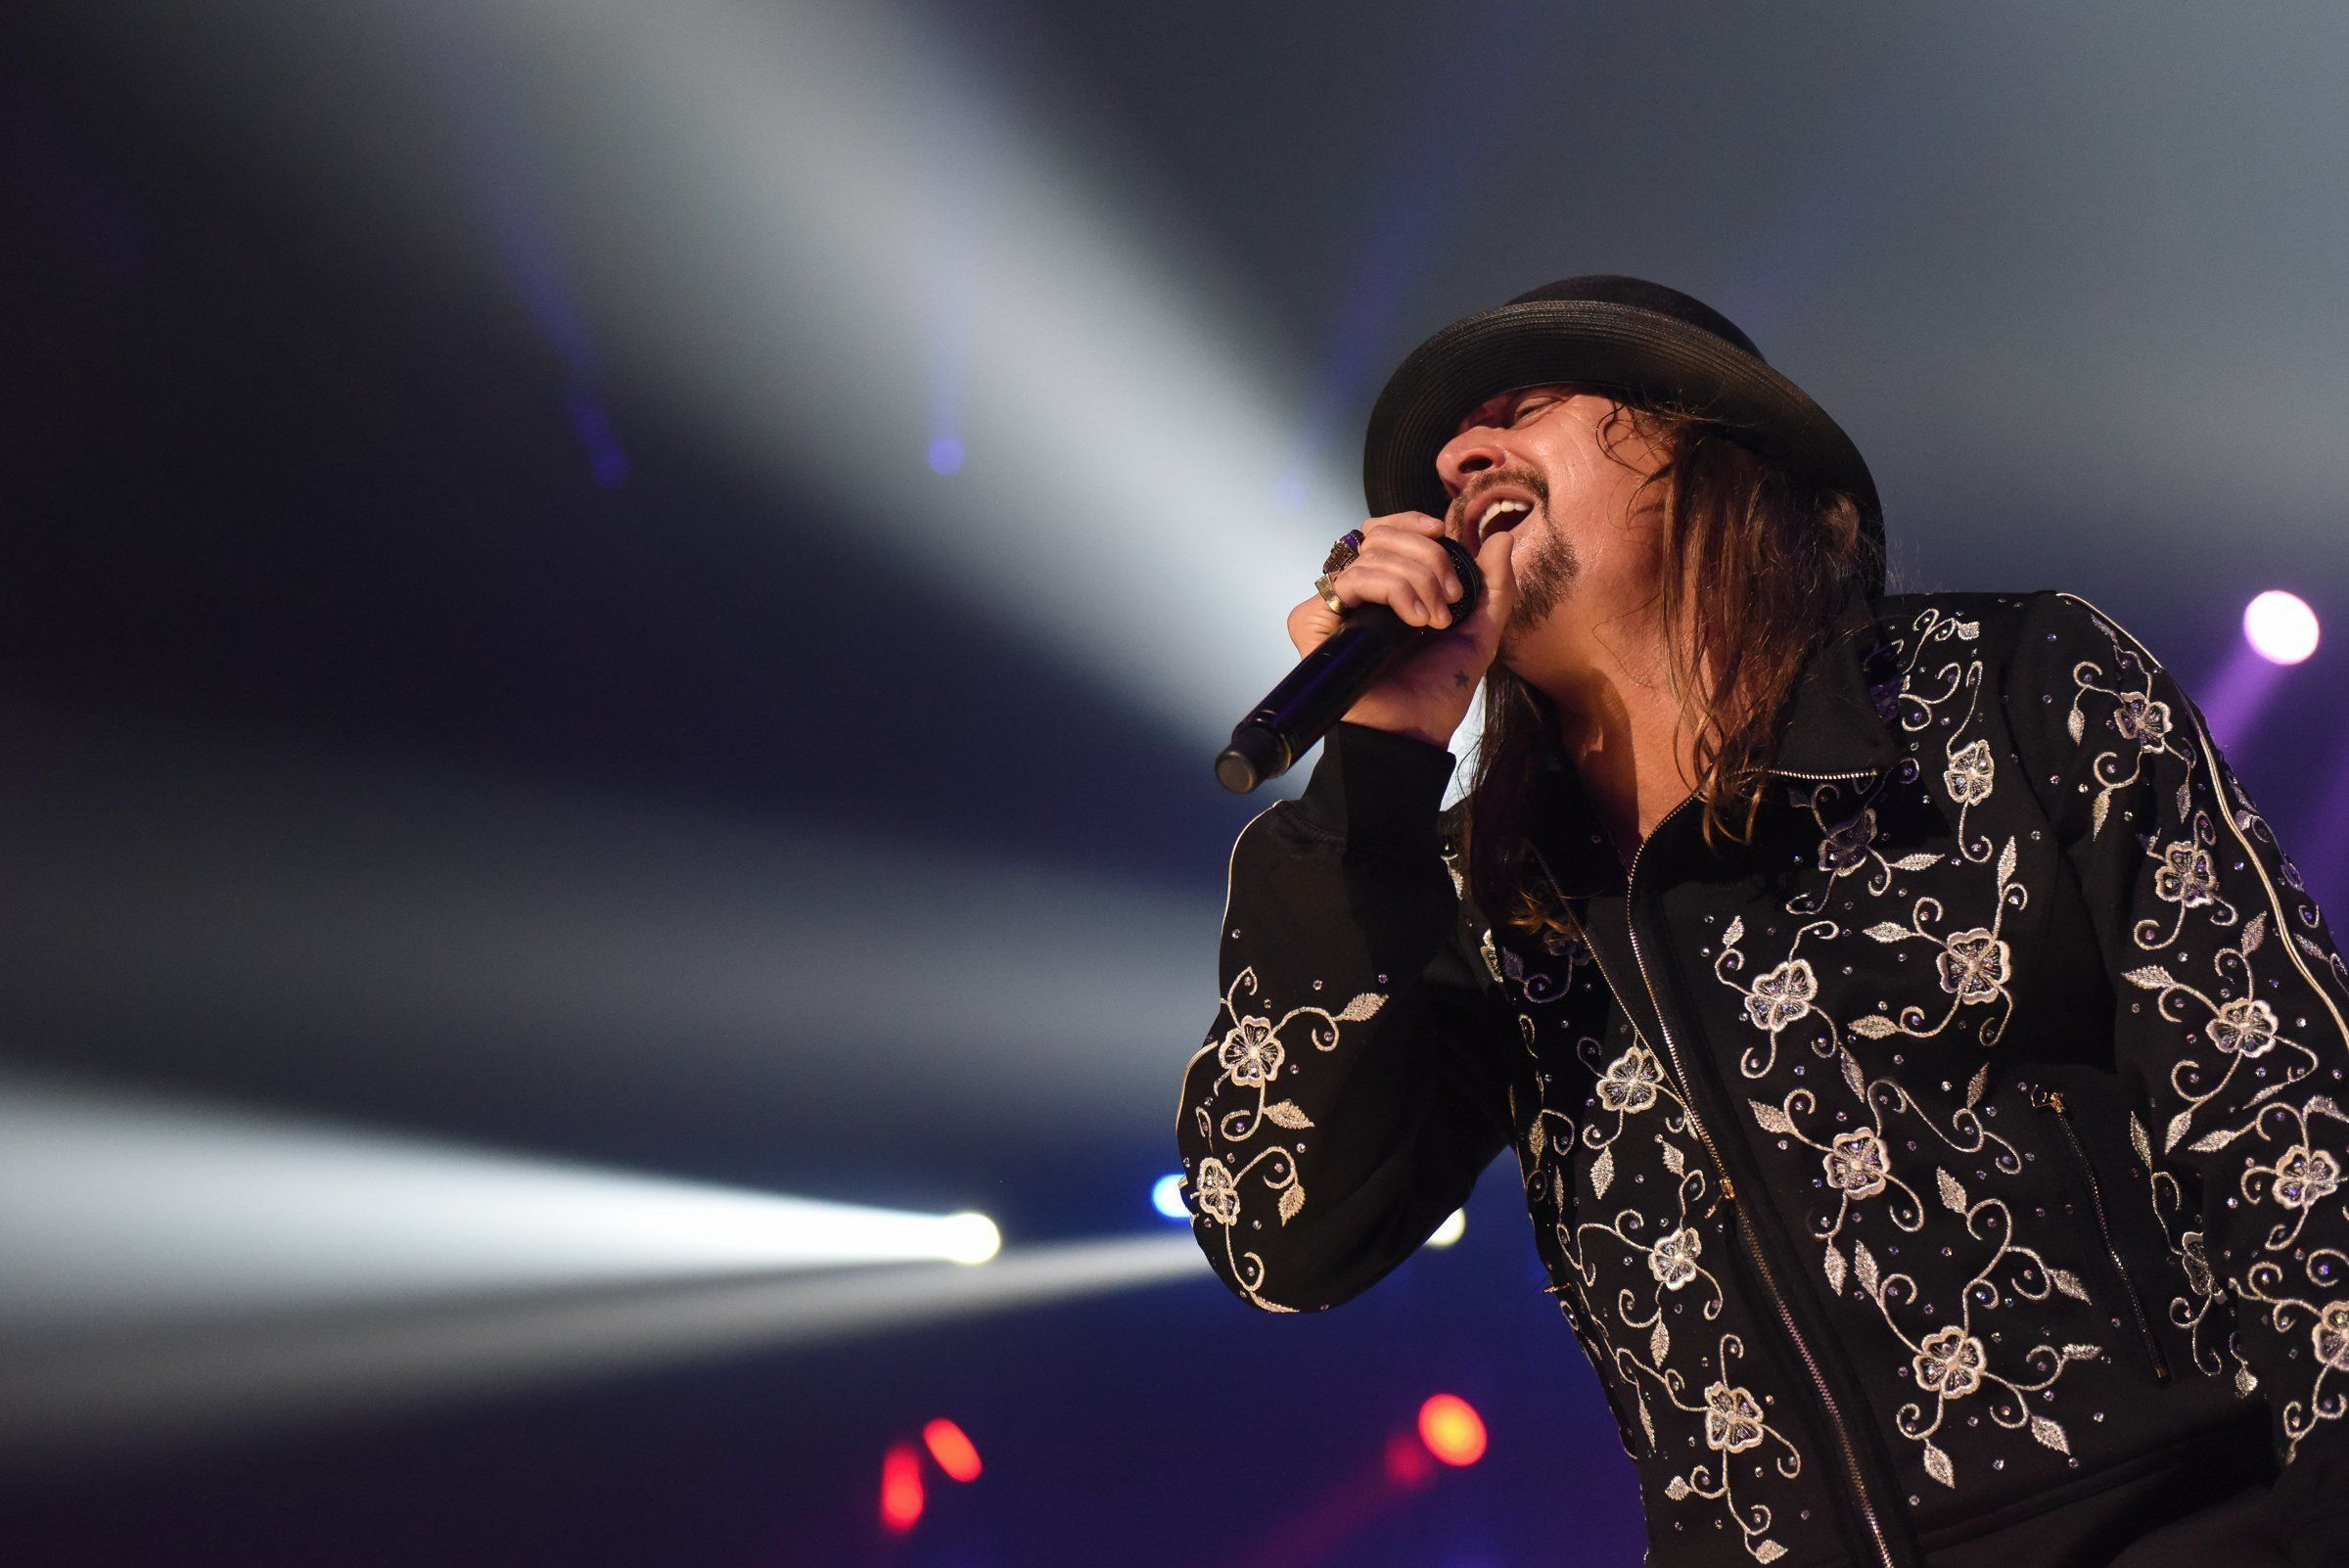 Kid Rock to perform on 2 consecutive weekends in September at DTE Energy